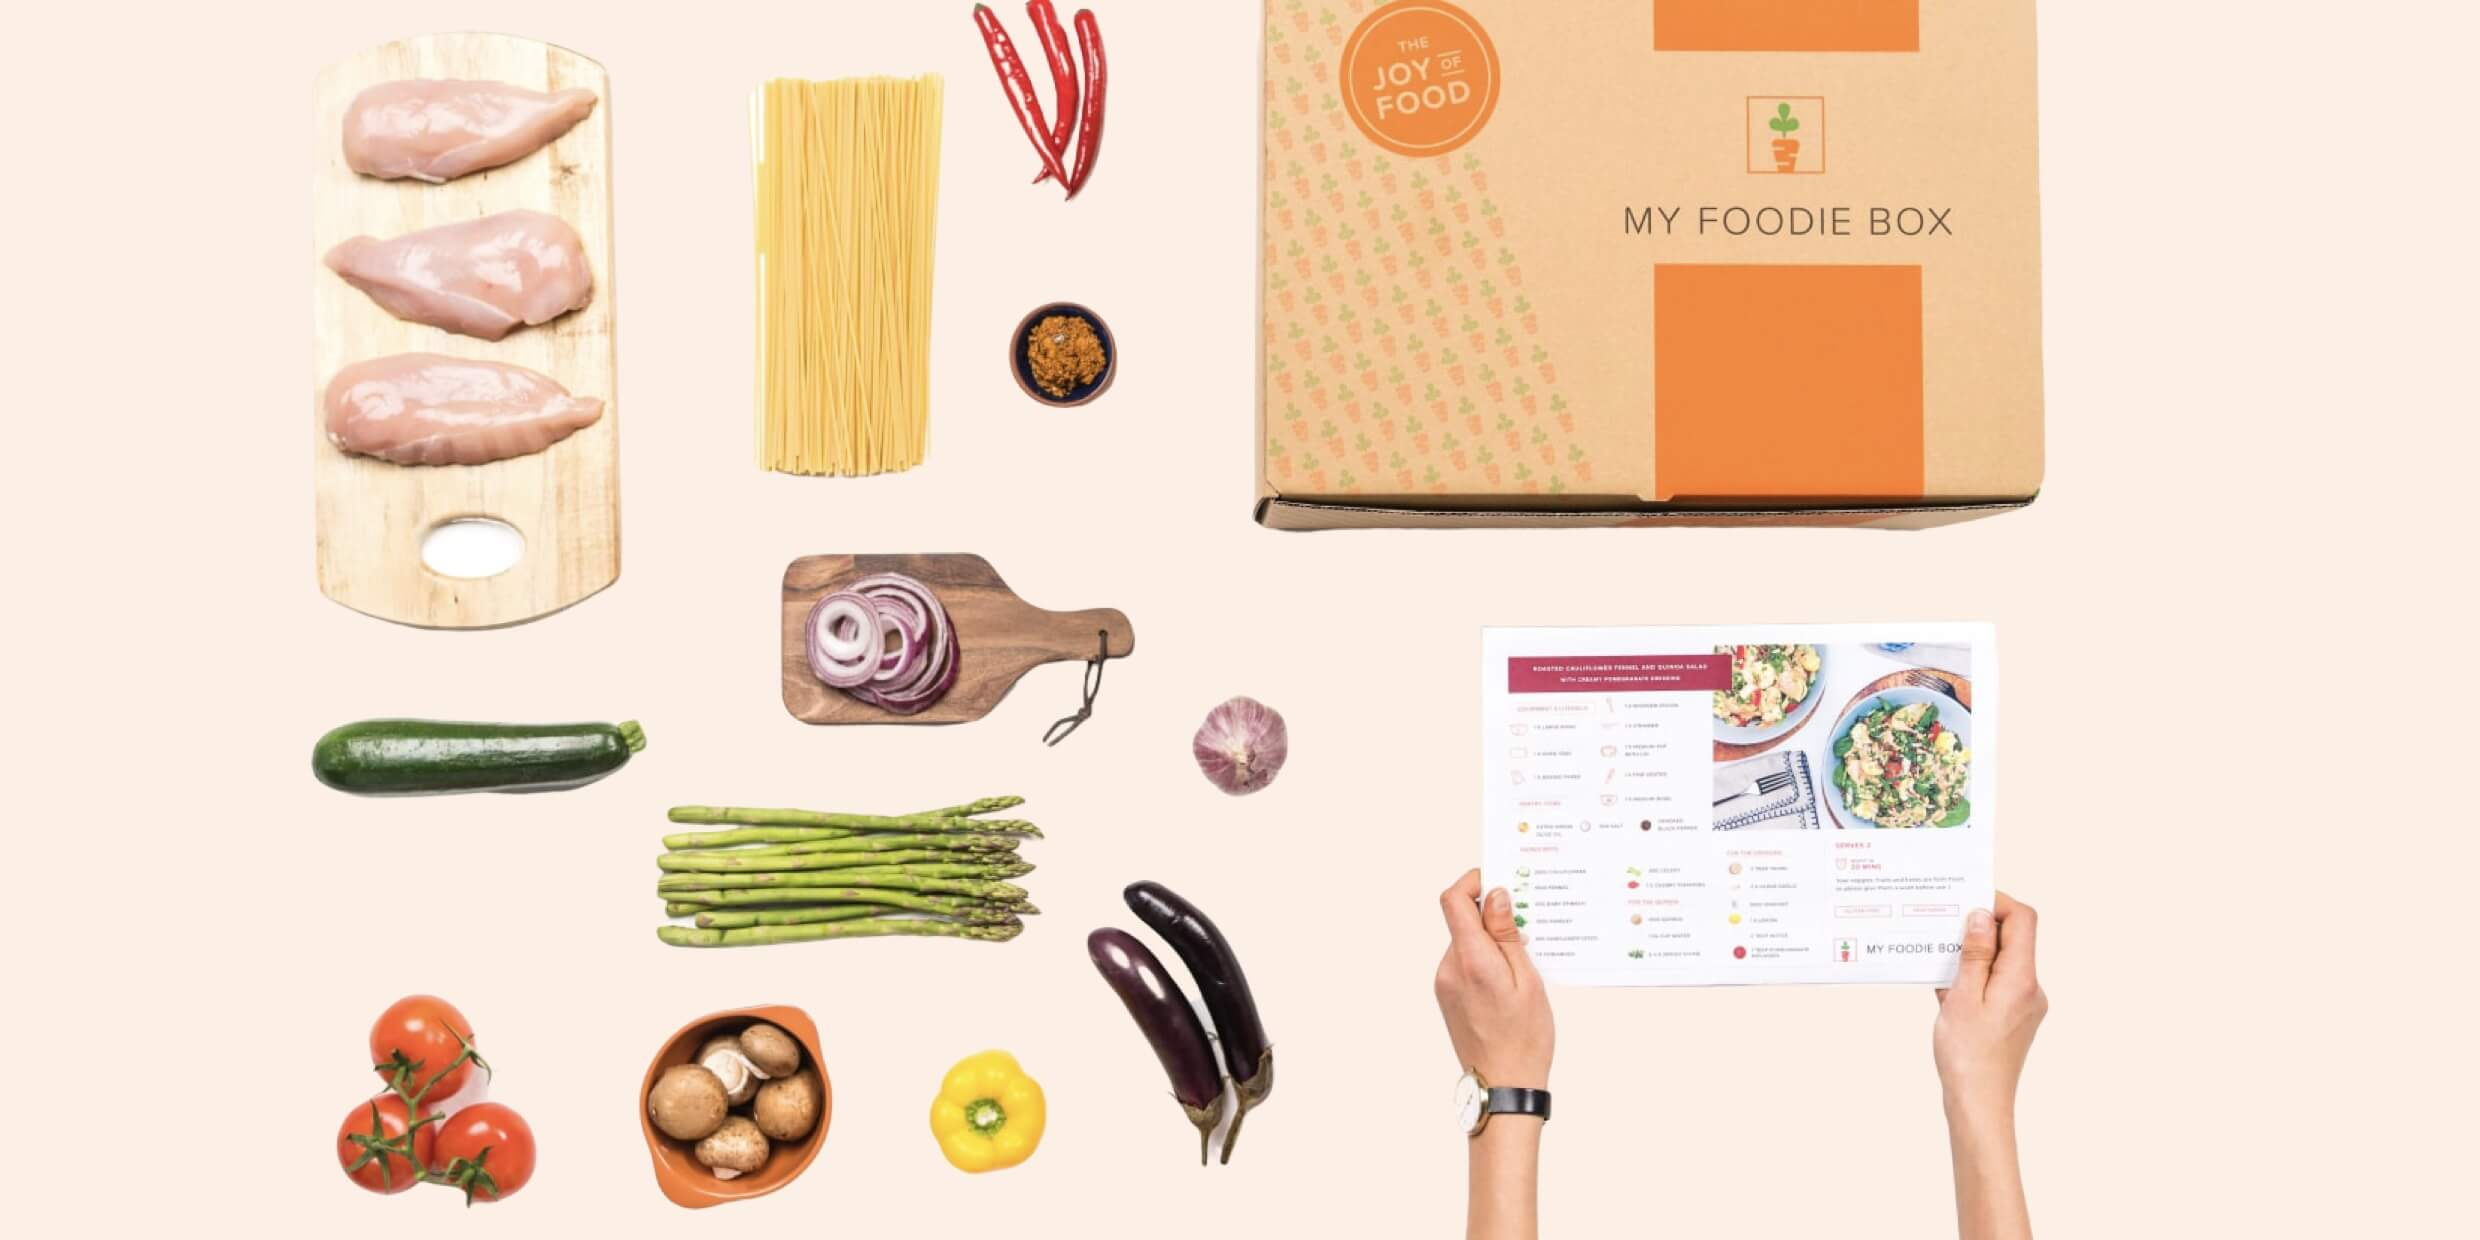 My Foodie Box: Meal Kits in WA